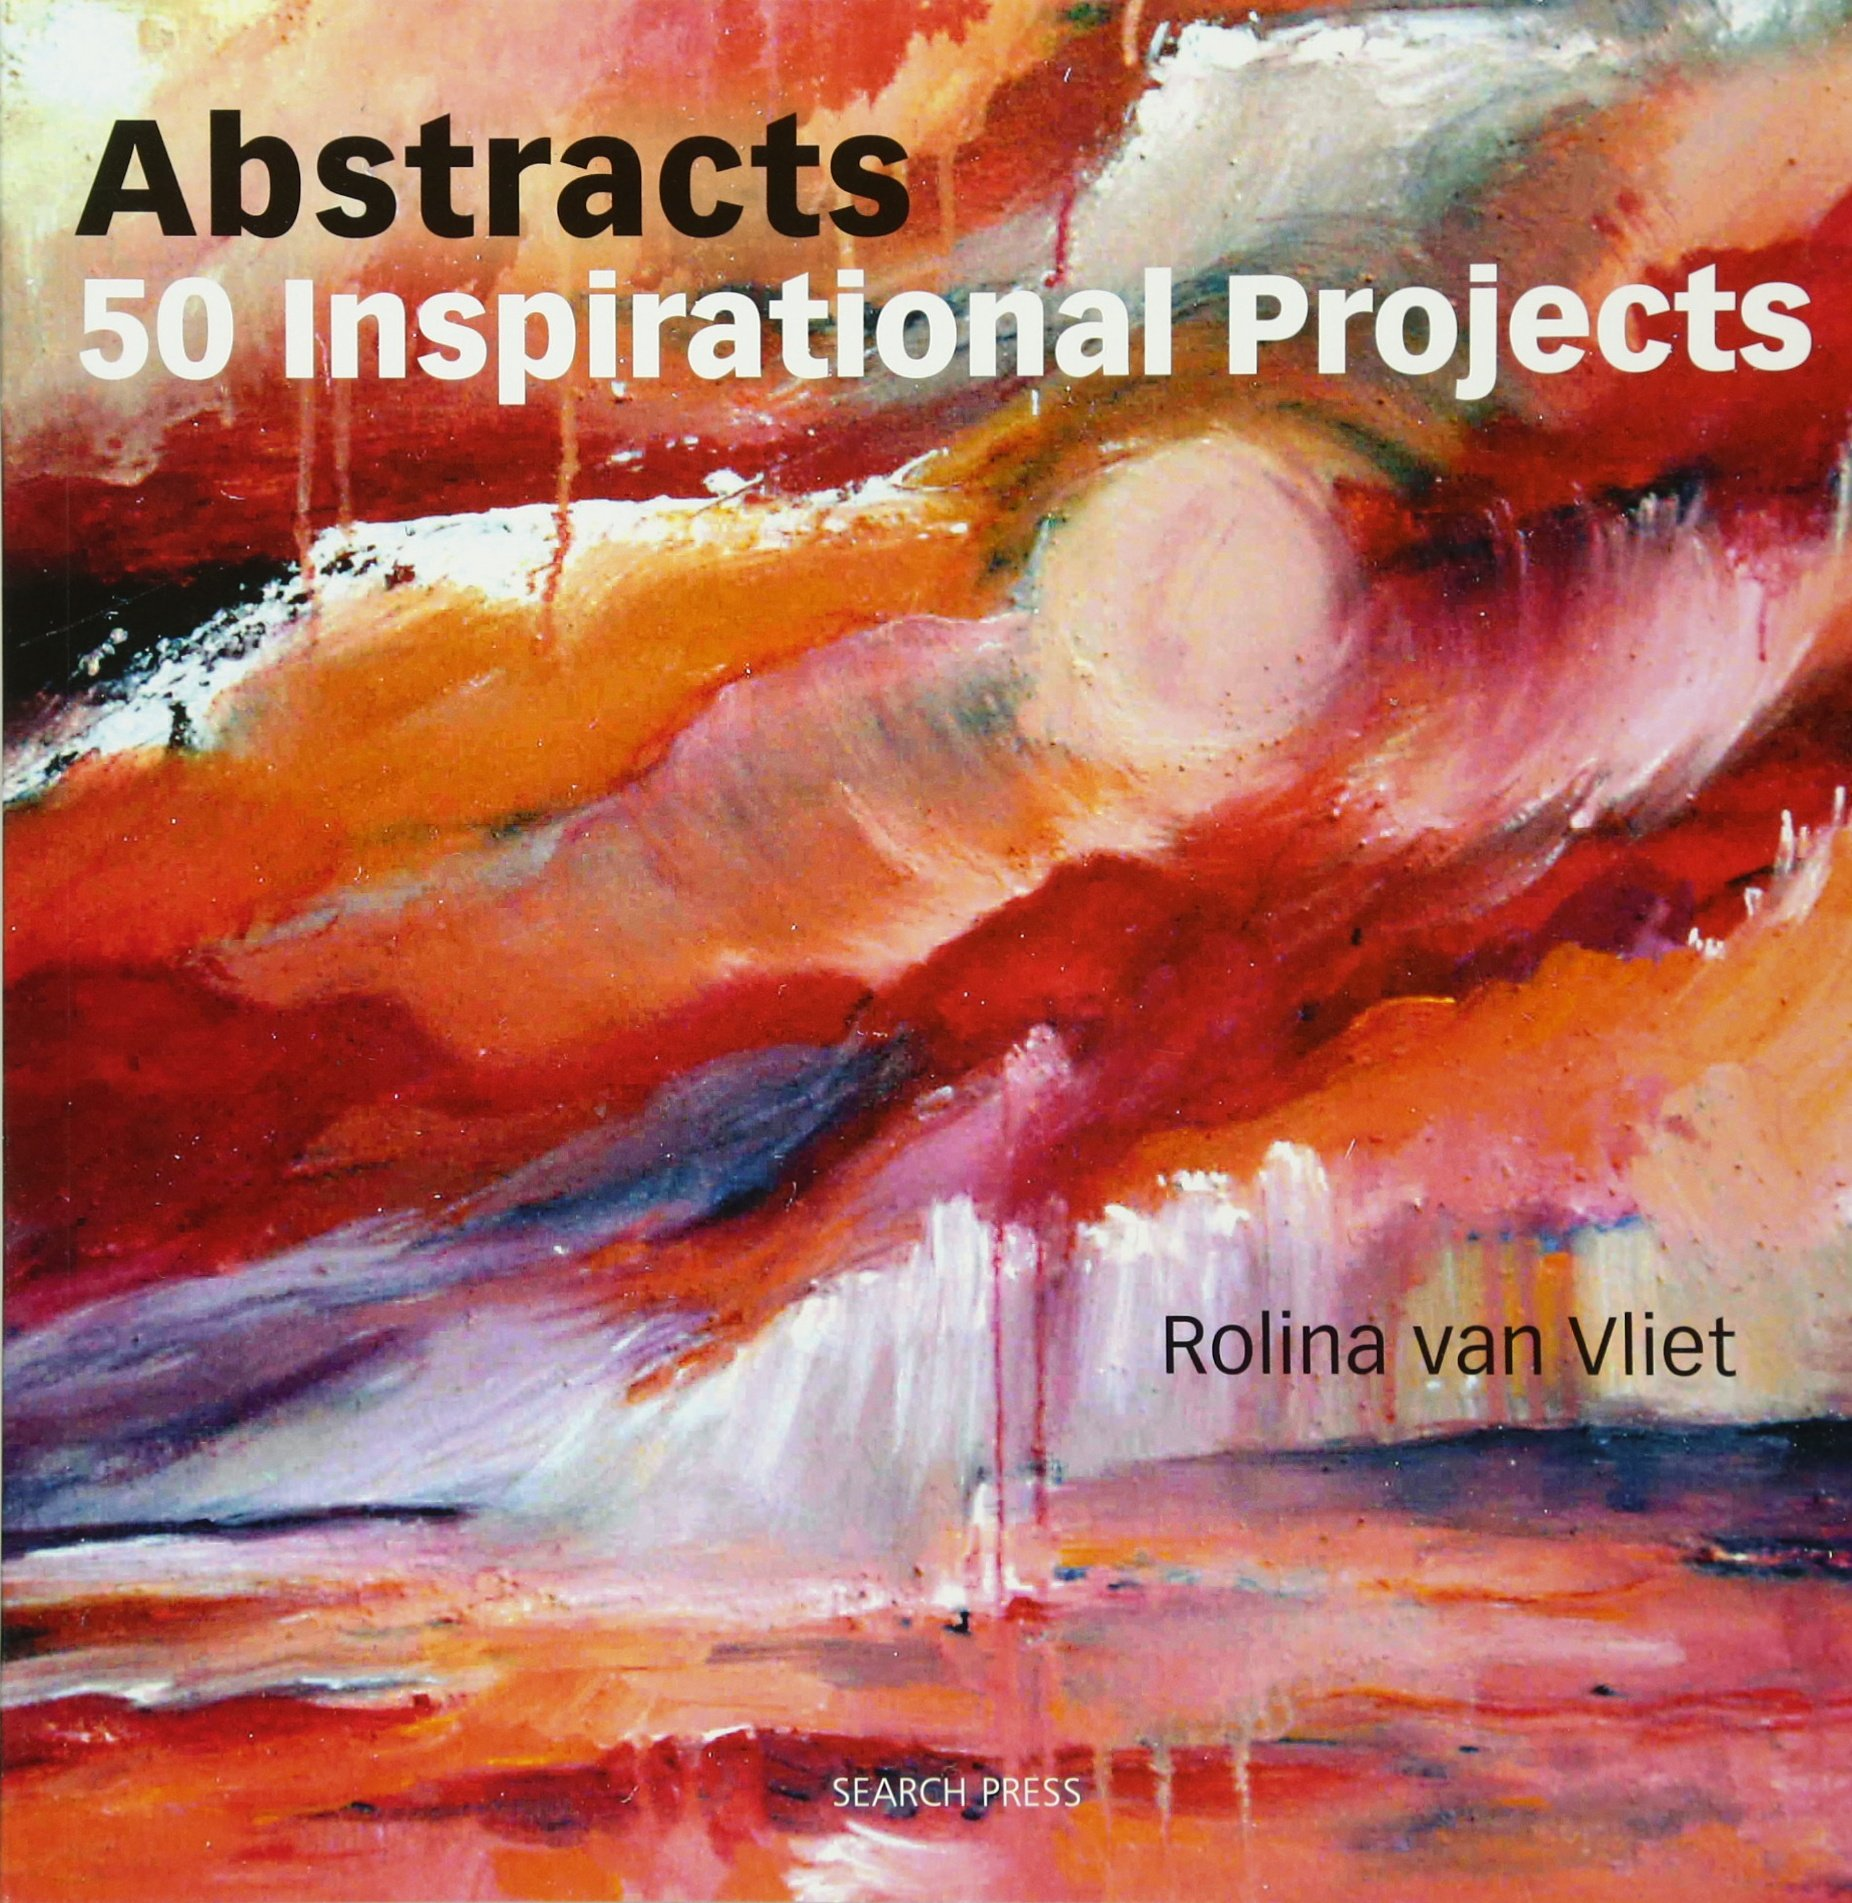 Watercolor books by search press - Abstracts 50 Inspirational Projects Rolina Van Vliet 9781844487158 Amazon Com Books